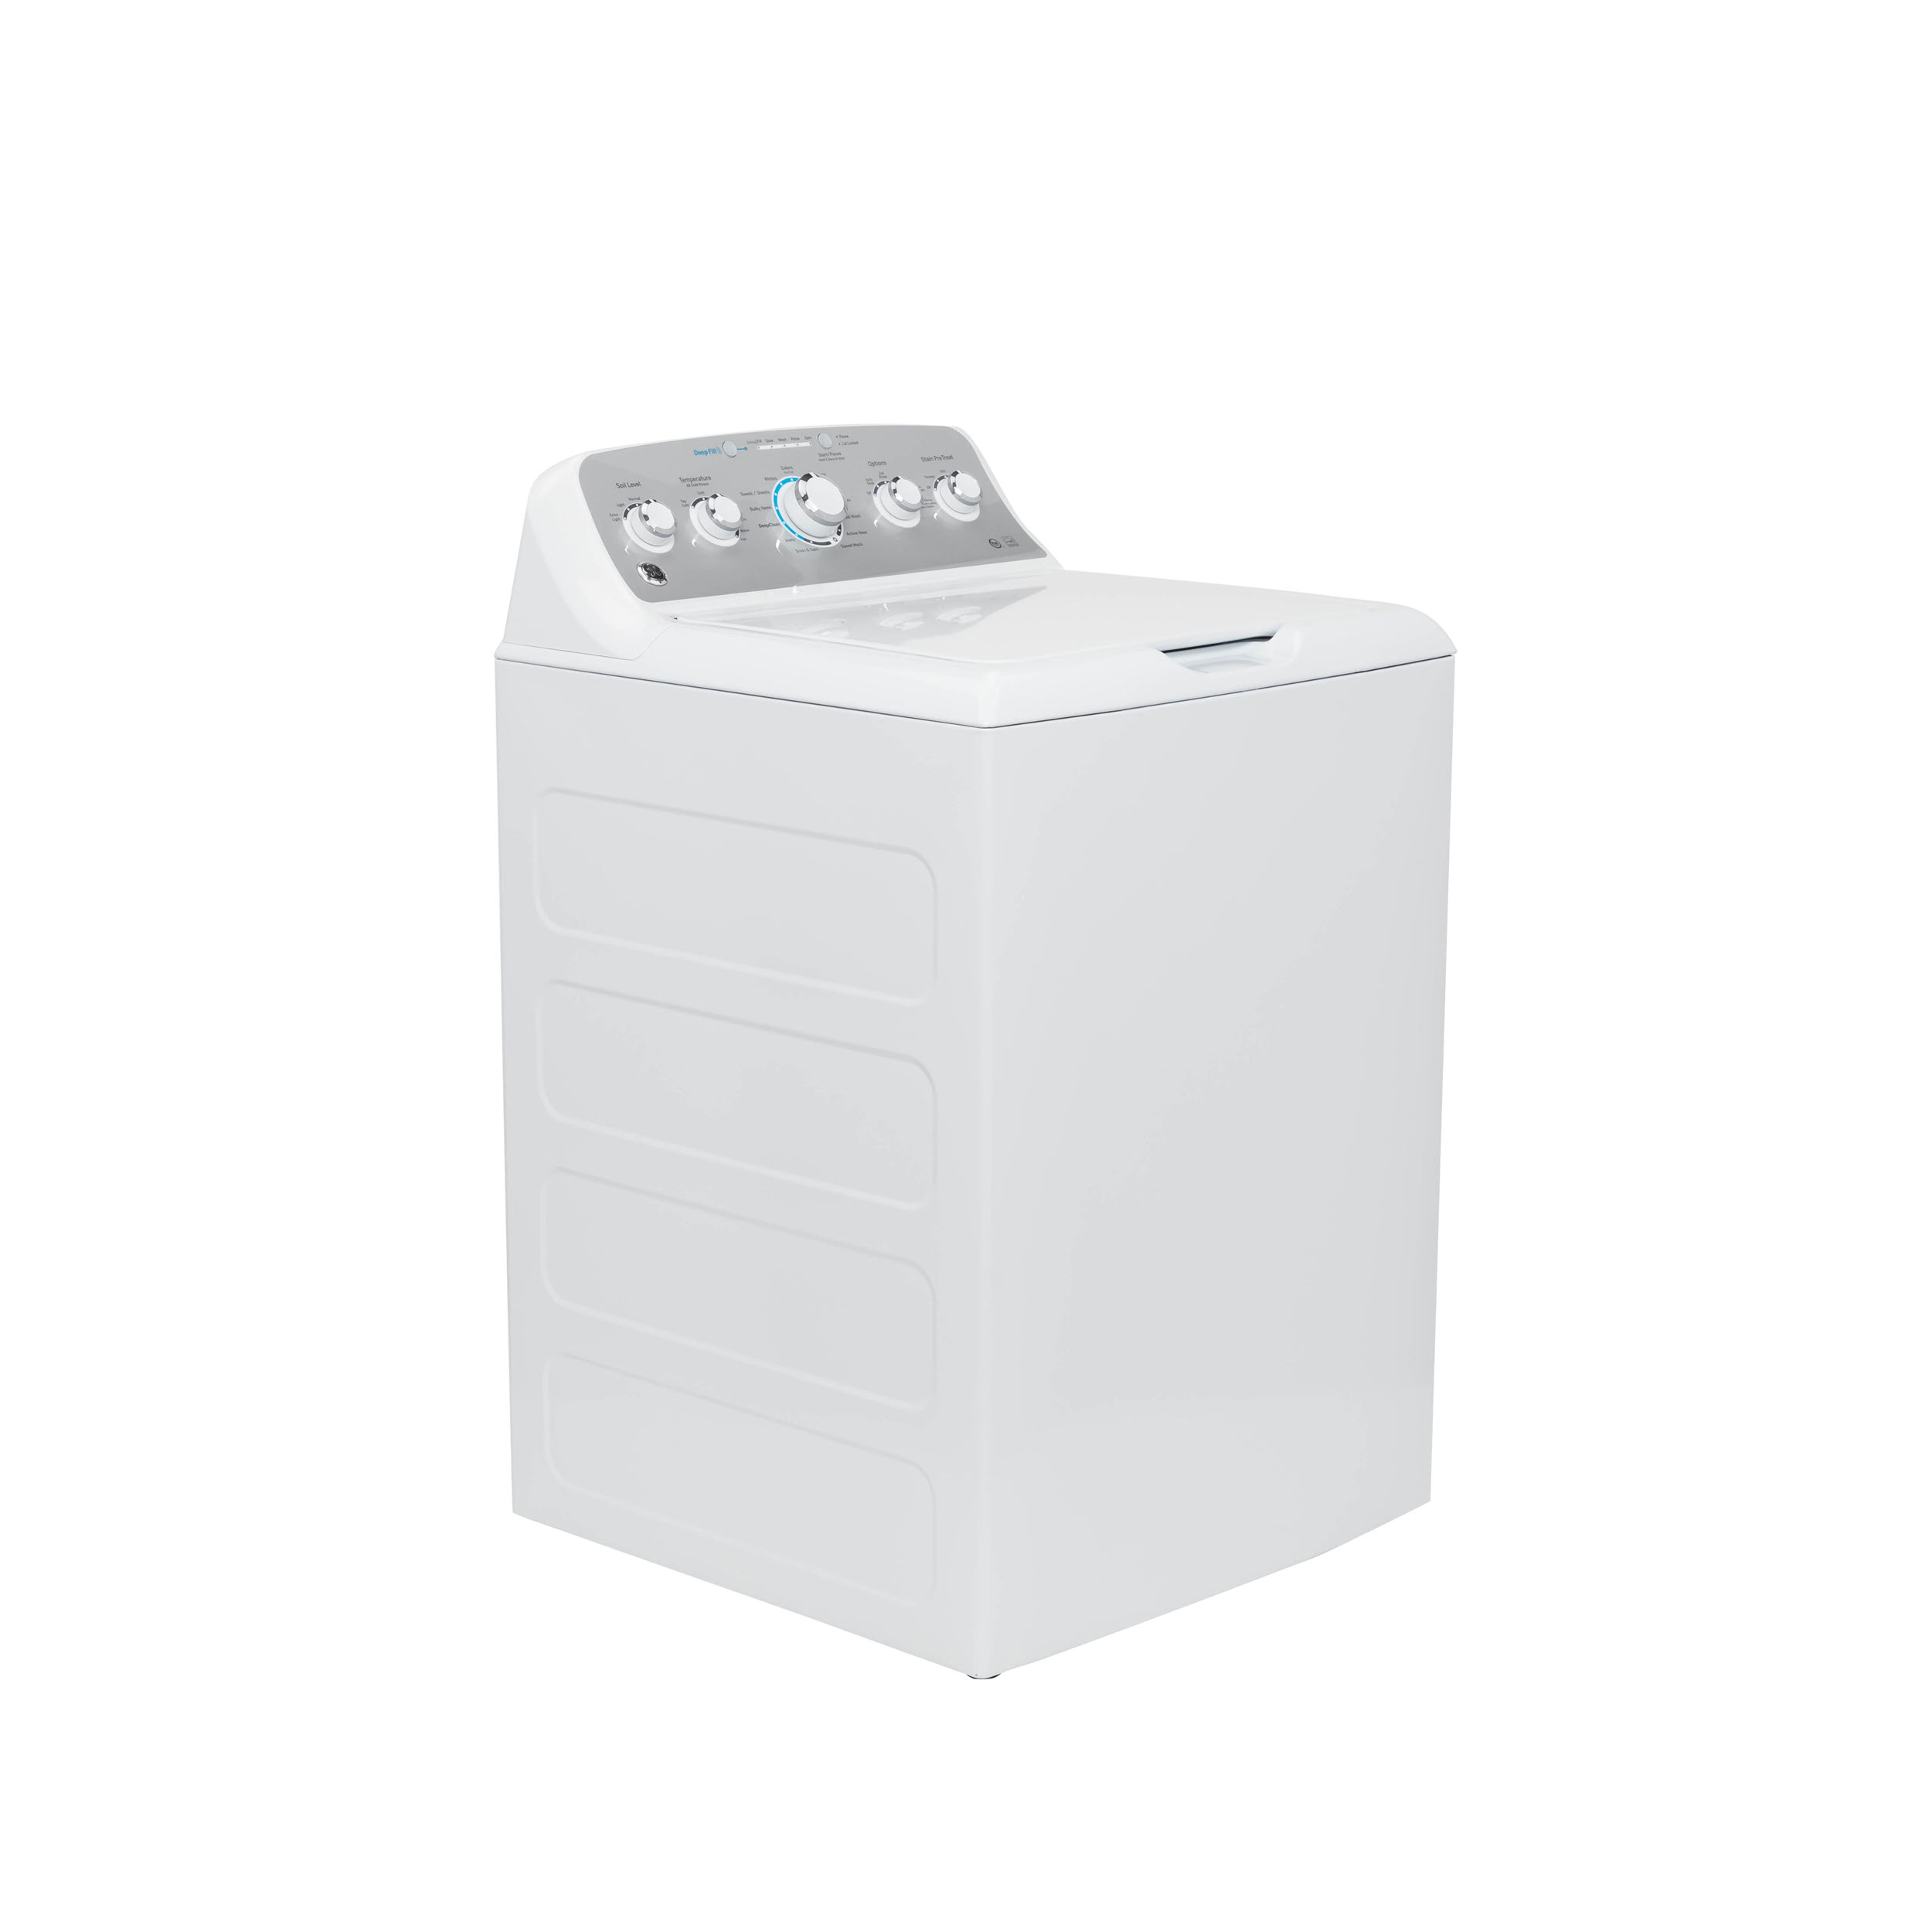 Model: GTW500ASNWS | GE GE® 4.6 cu. ft. Capacity Washer with Stainless Steel Basket